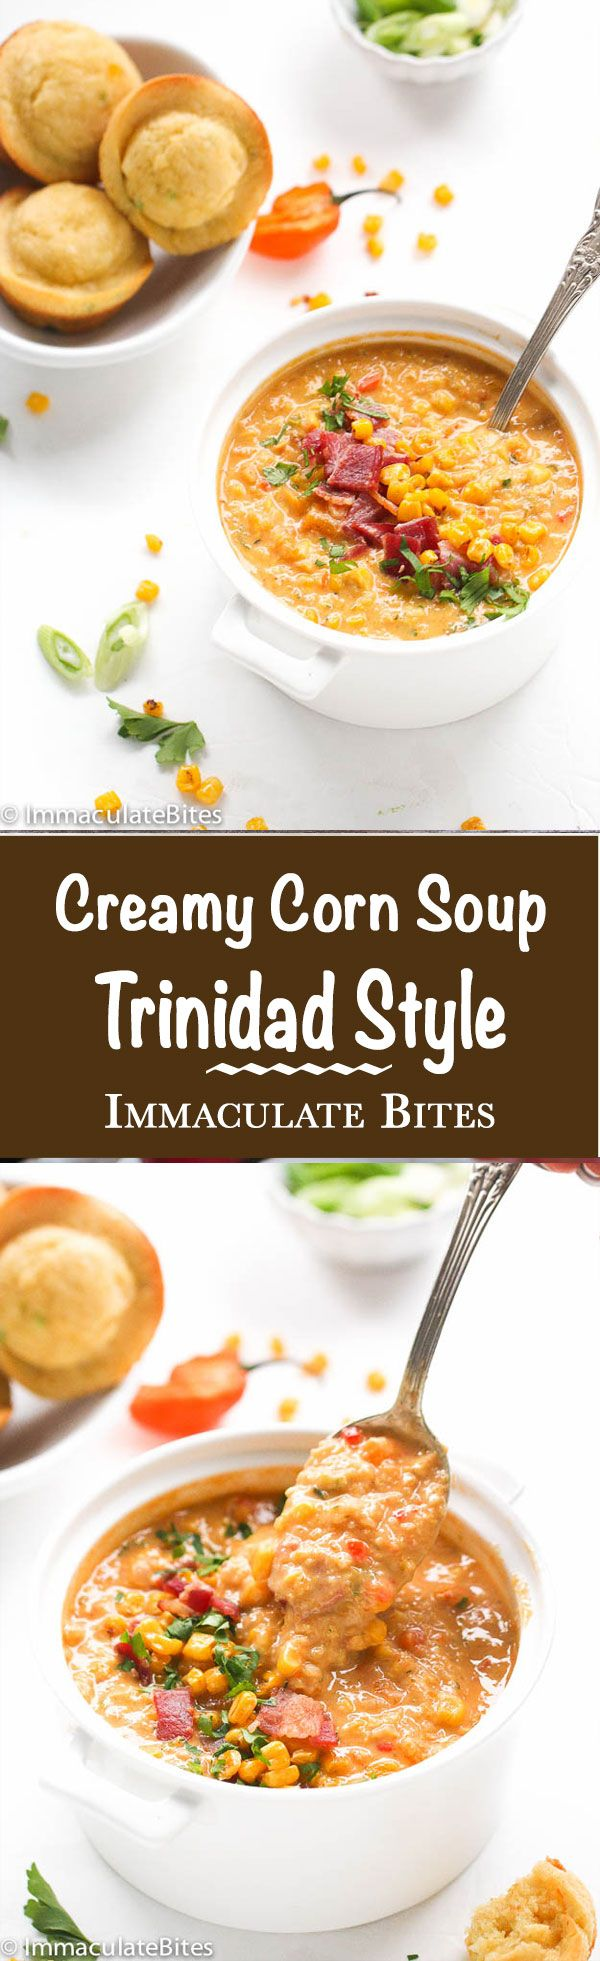 Trinidad Style Corn Soup- A Warm, Smokey and filling corn soup Caribbean Style that's incredibly creamy and slightly sweet, perfect for those winter nights or warm summer days.